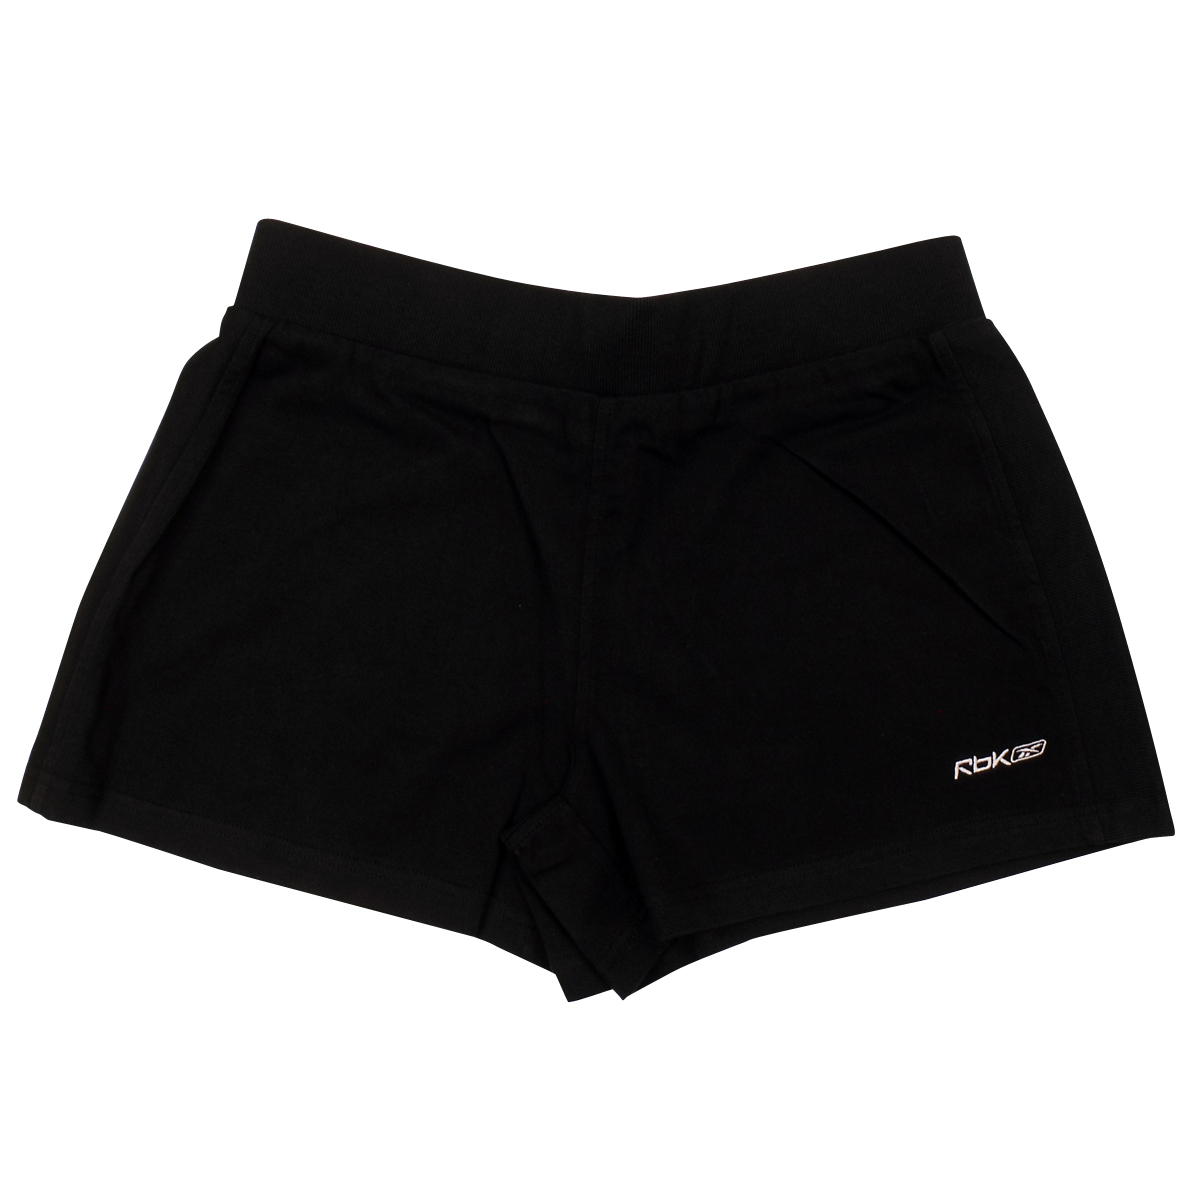 Ladies-Reebok-Knit-Shorts-Jogging-Gym-Running-Yoga-Short-Womens-Sports-Summer